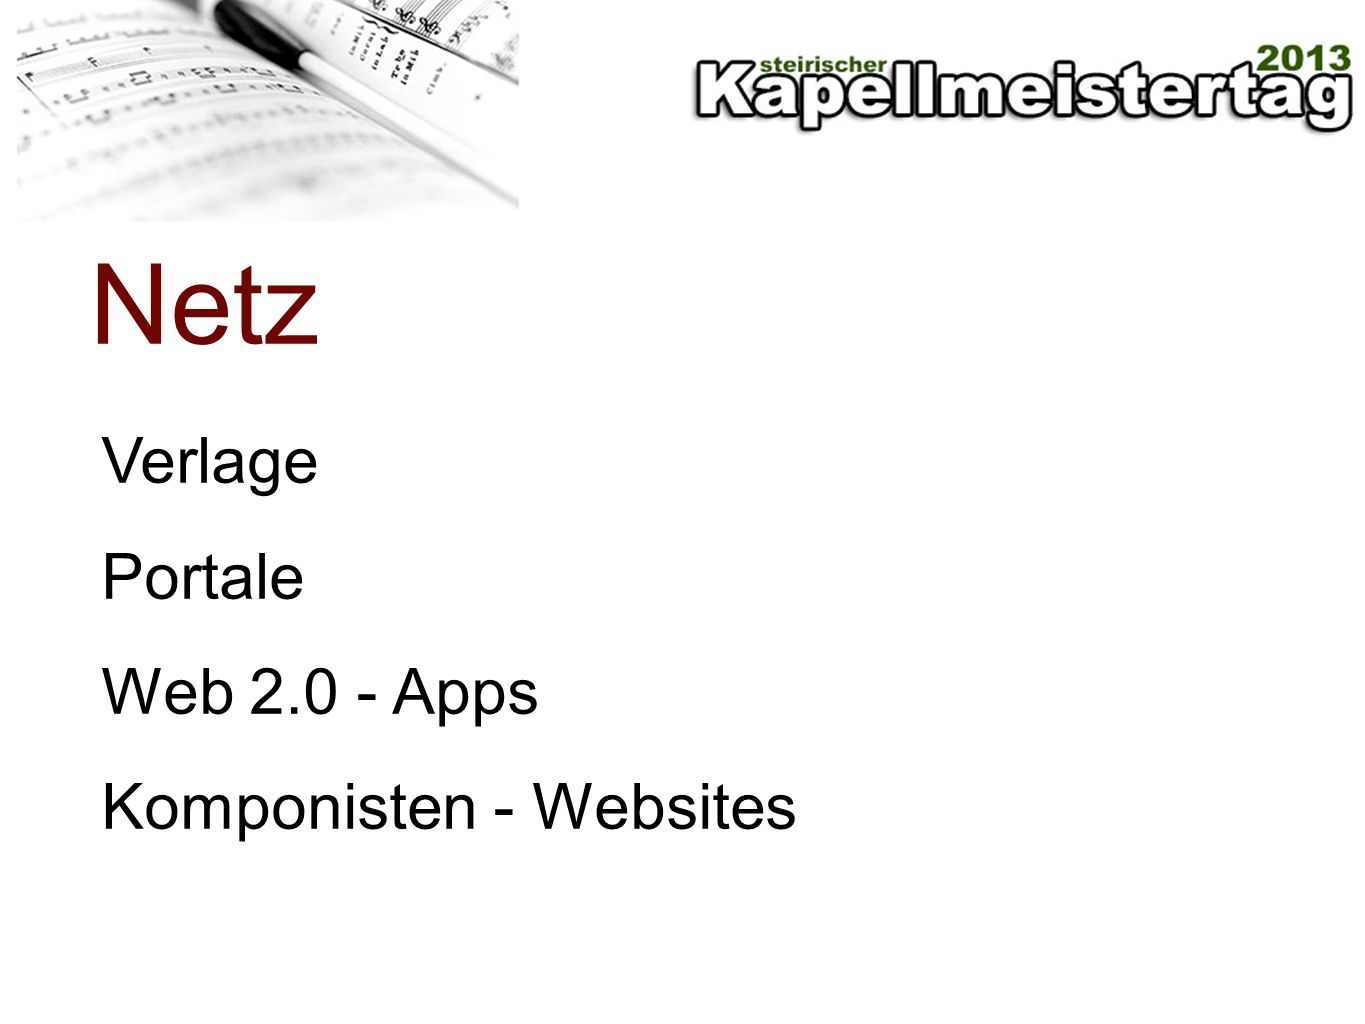 Notenrecherche im Netz Verlage Portale Web Apps Komponisten - Websites